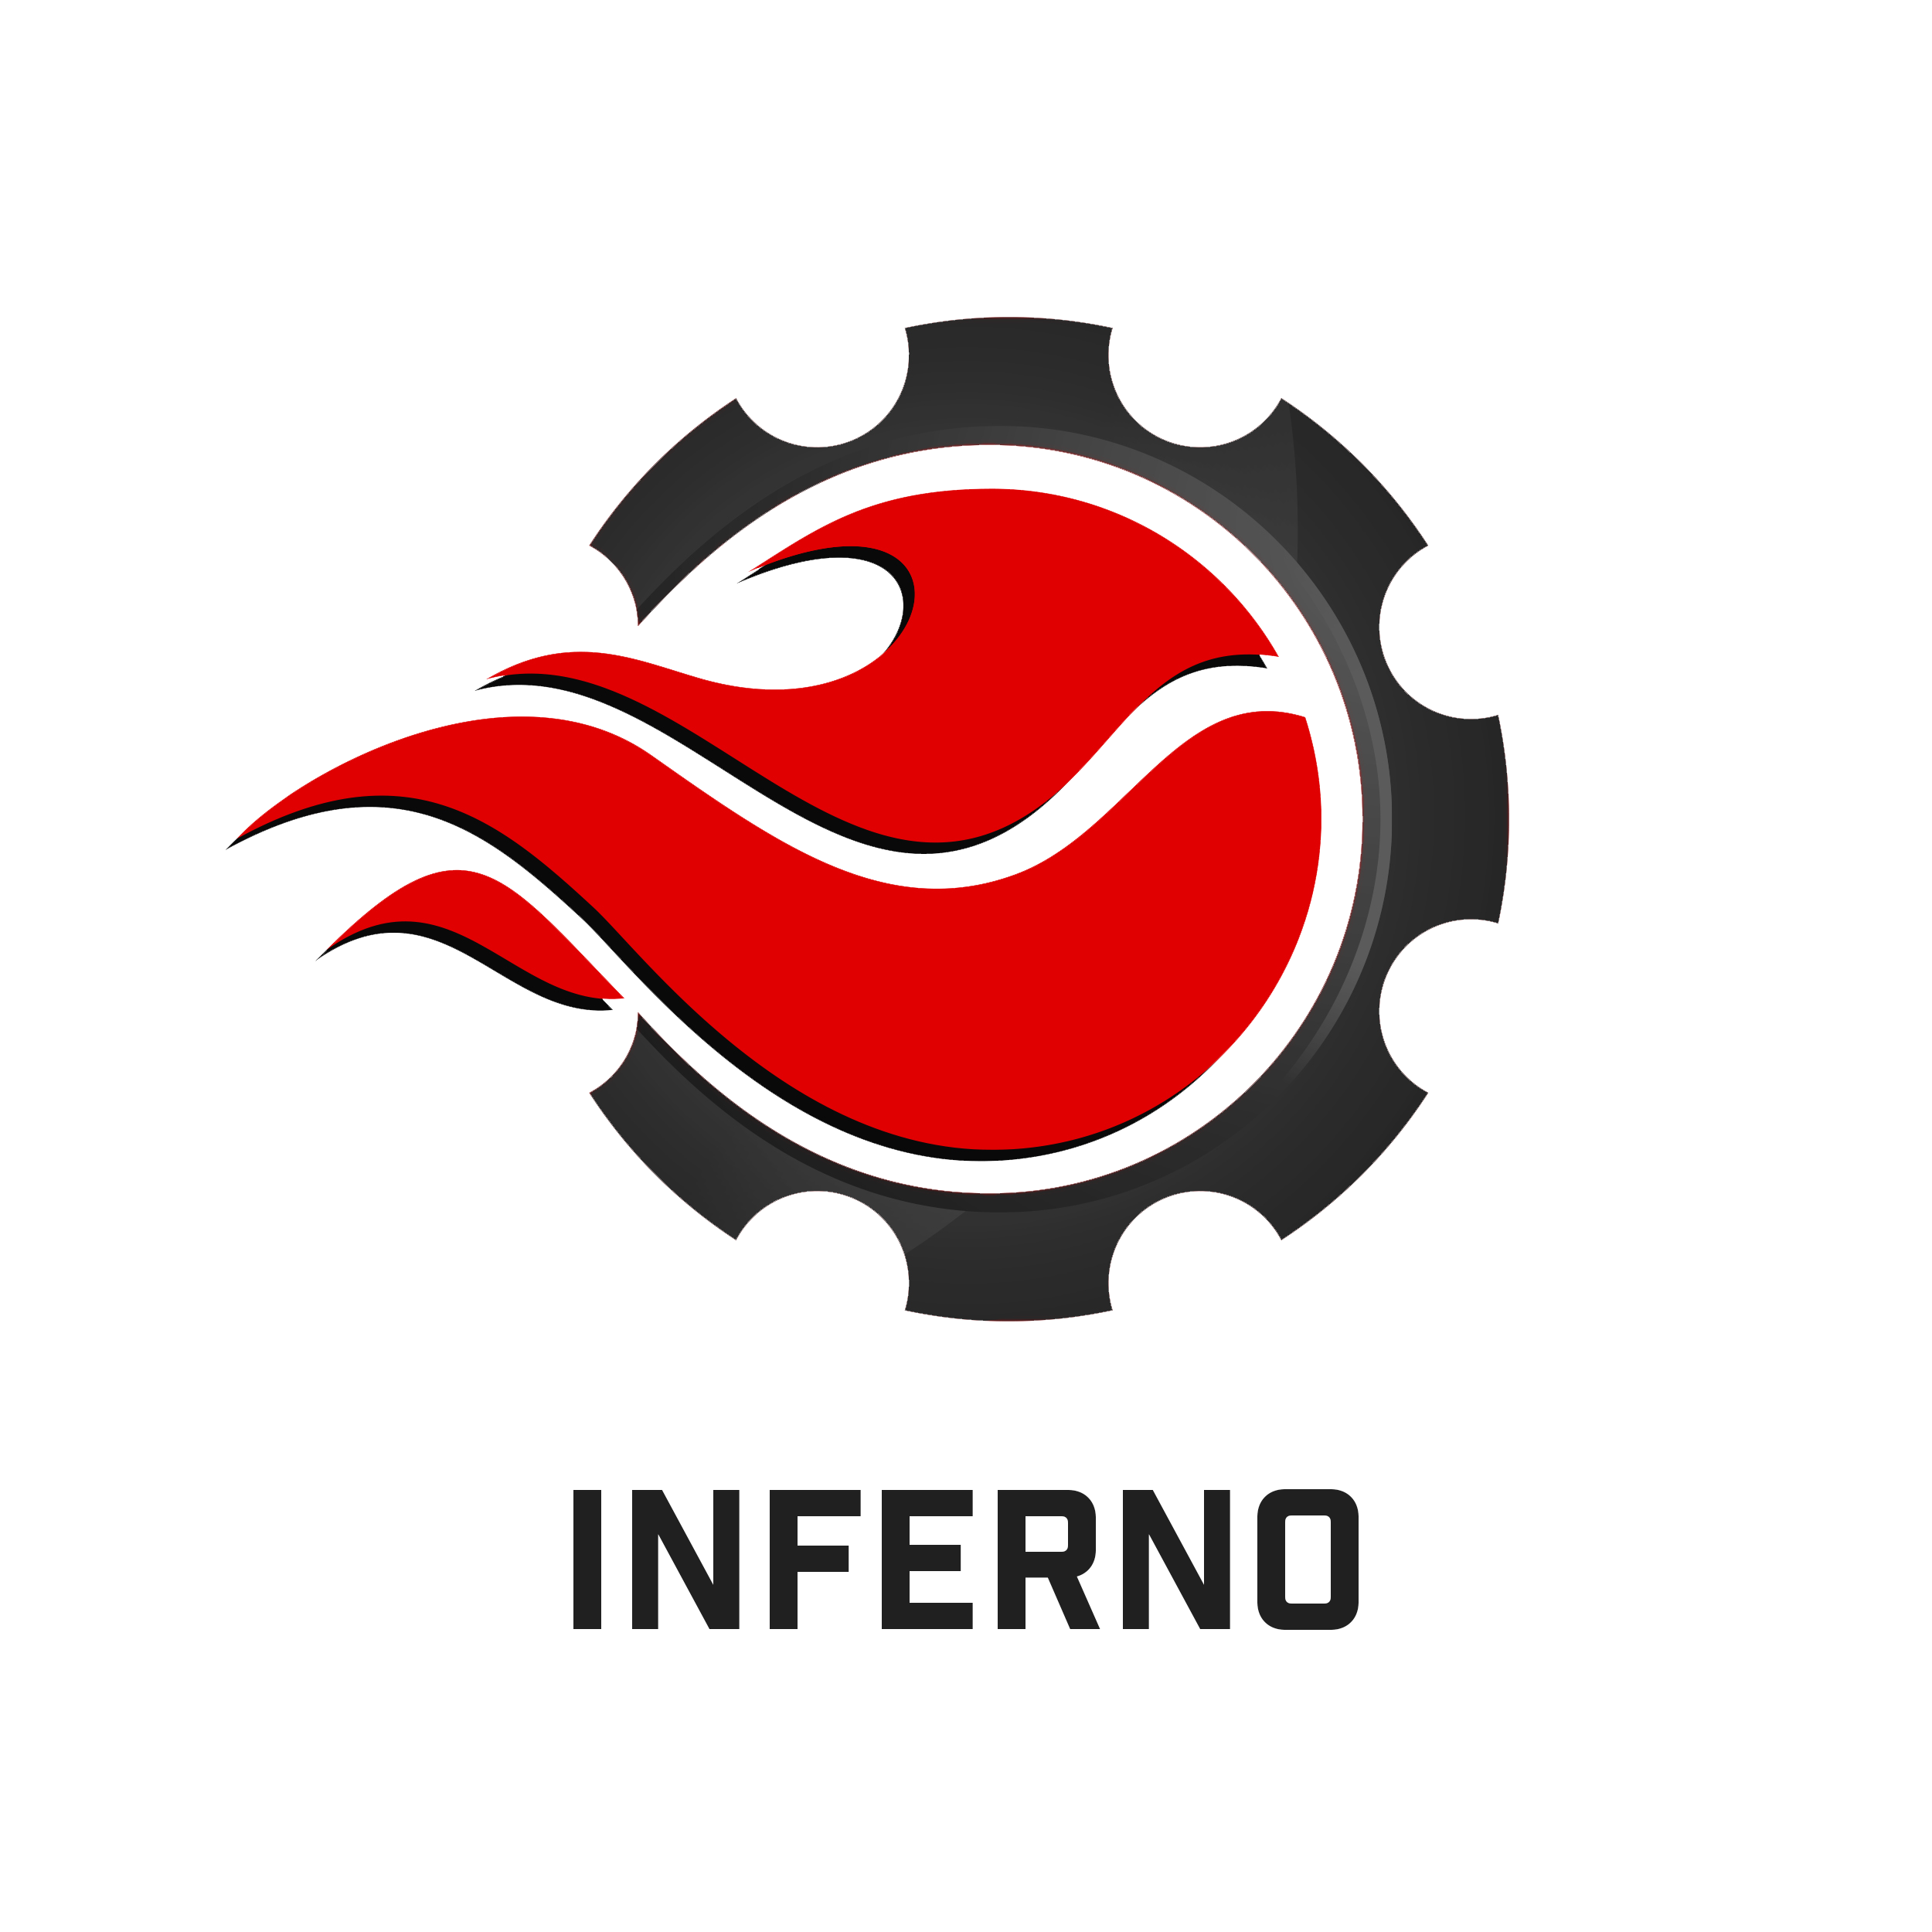 INFERNO PNG